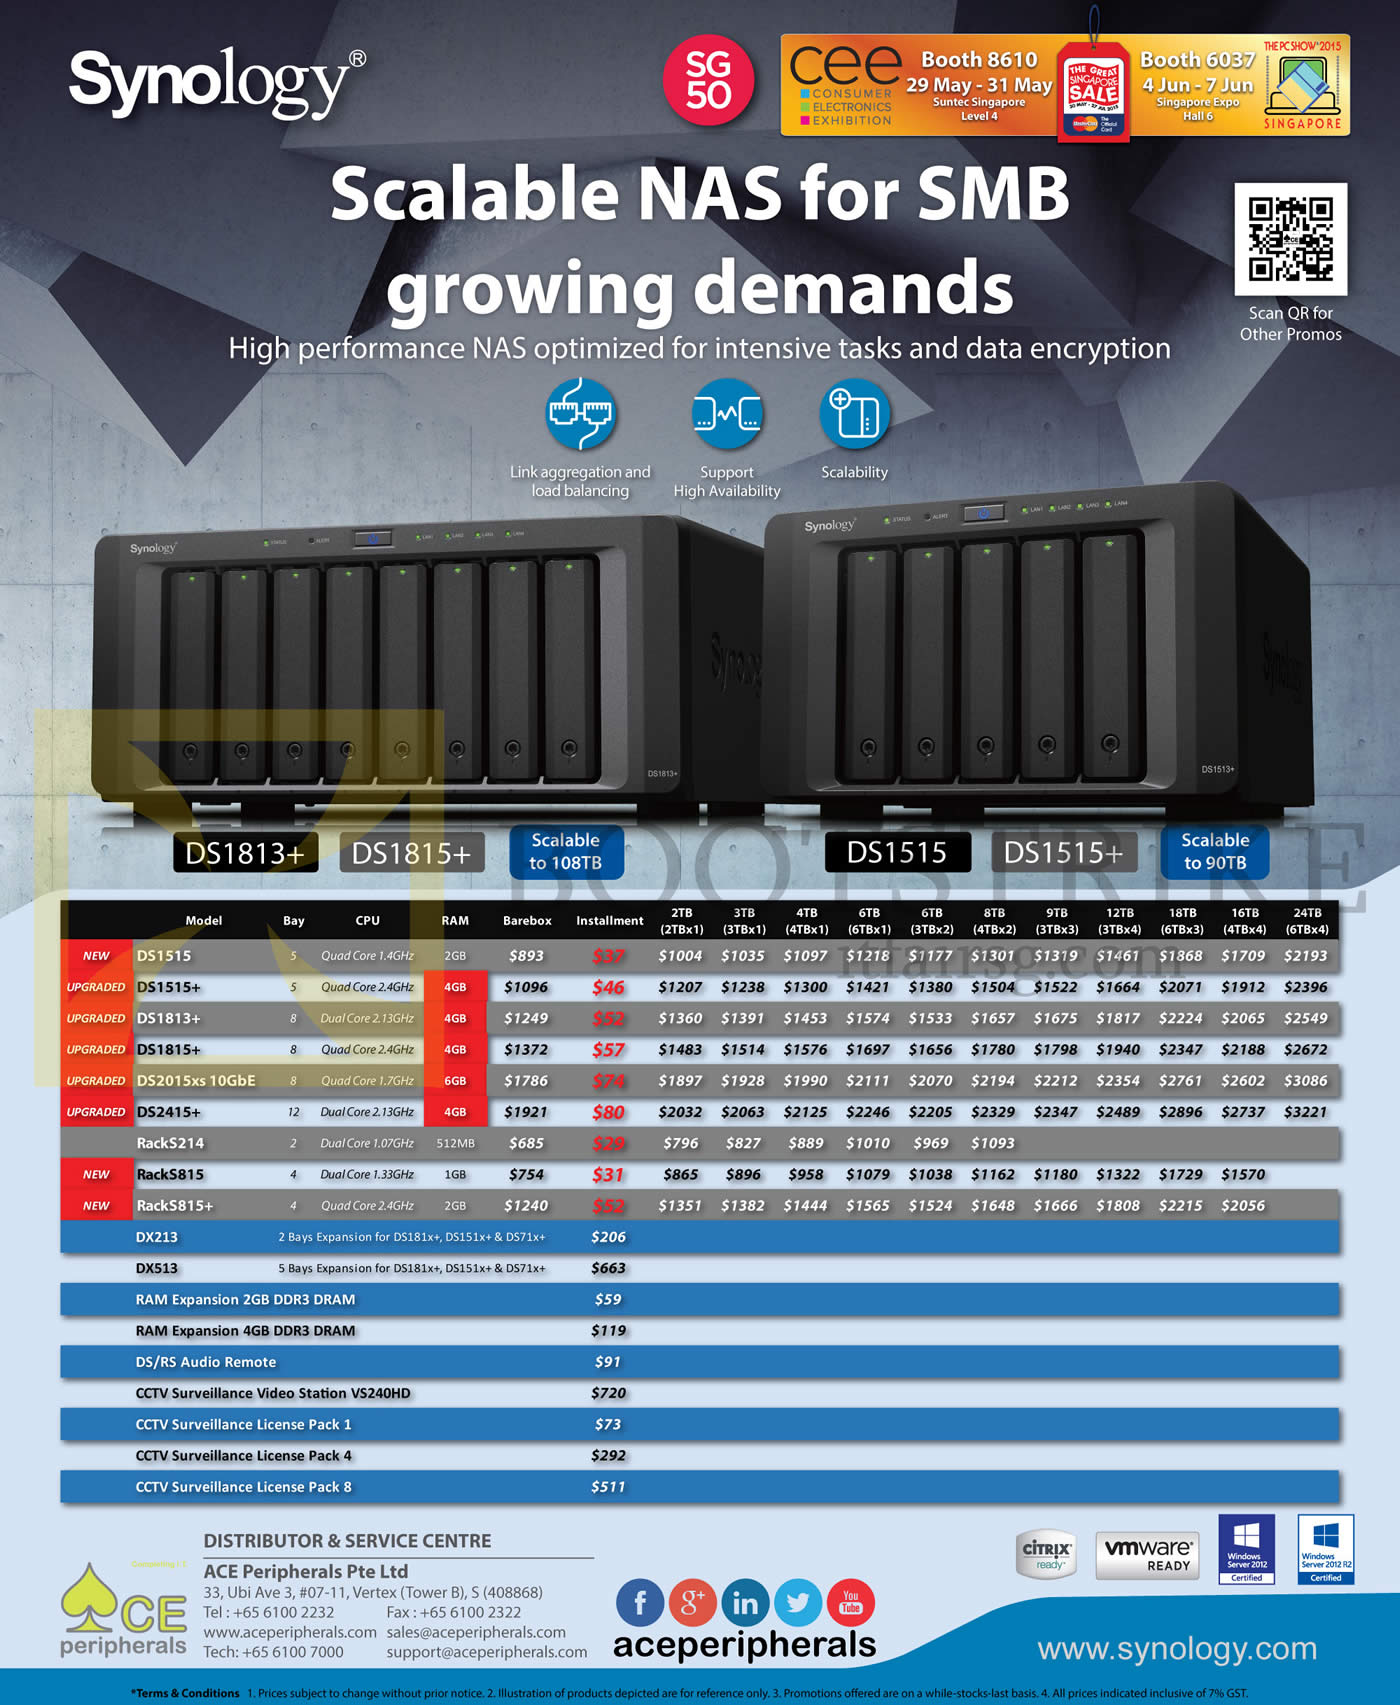 PC SHOW 2015 price list image brochure of Ace Peripherals Synology NAS DS1513 DS1813 DS2413 RS214 RS814 DX213 DX513 DS1515 DS1815 Plus